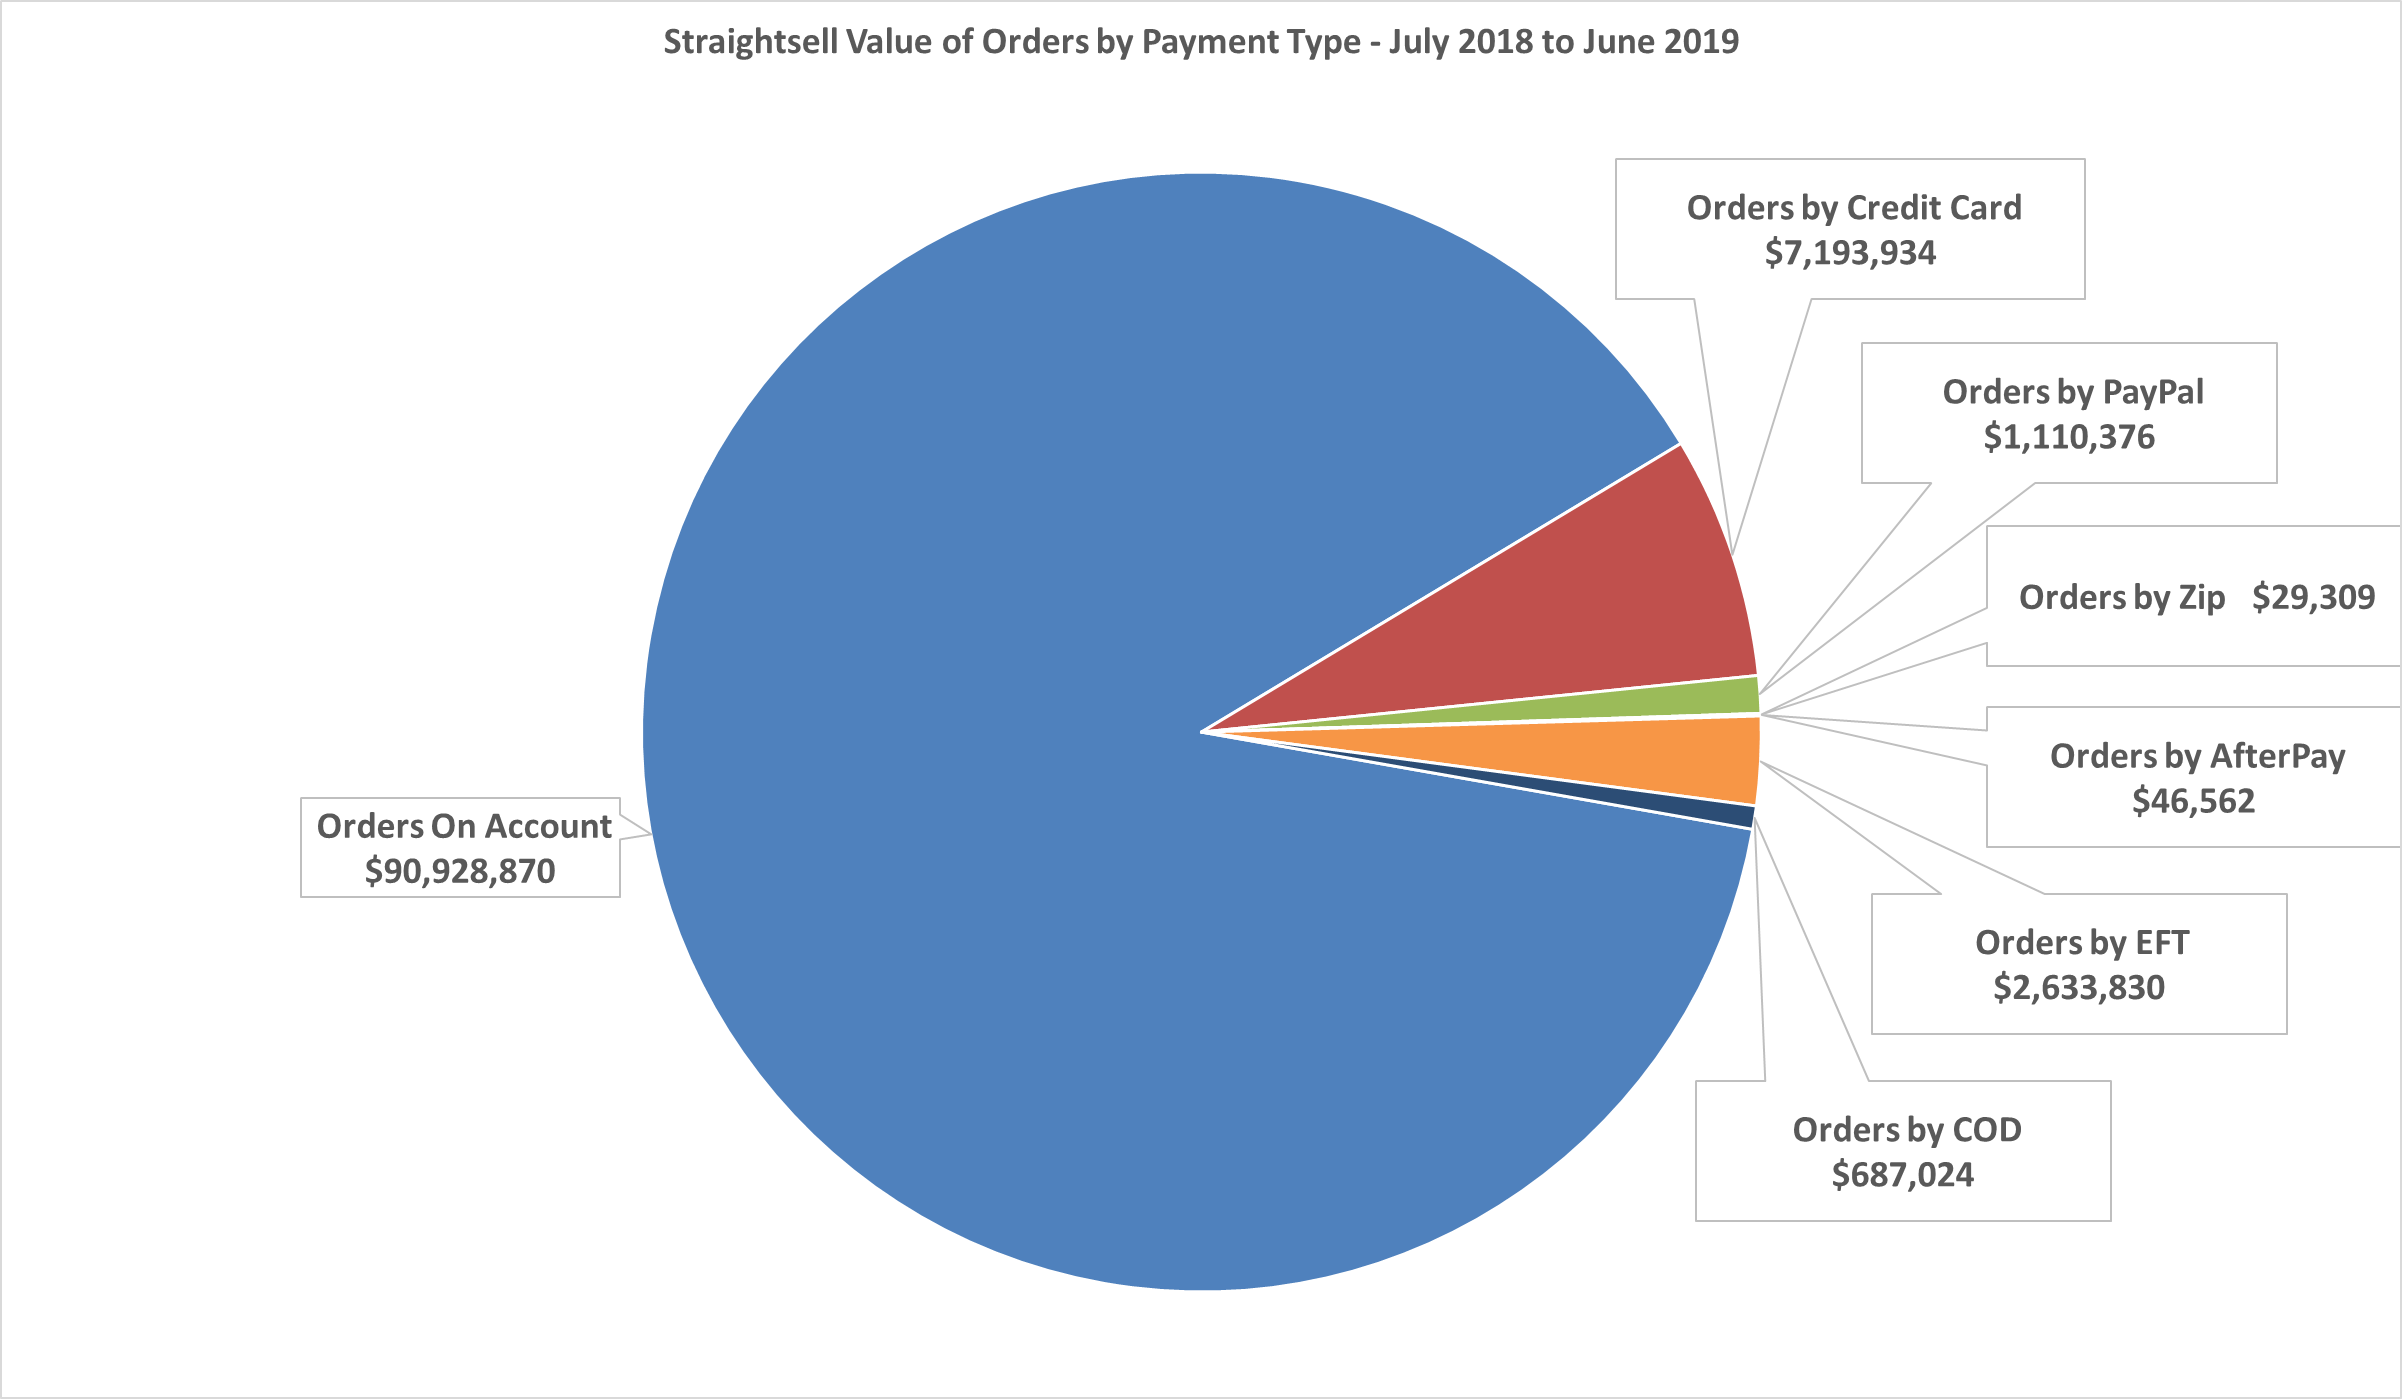 Straightsell Value of Orders by Payment Type - July 2018 thru June 2019